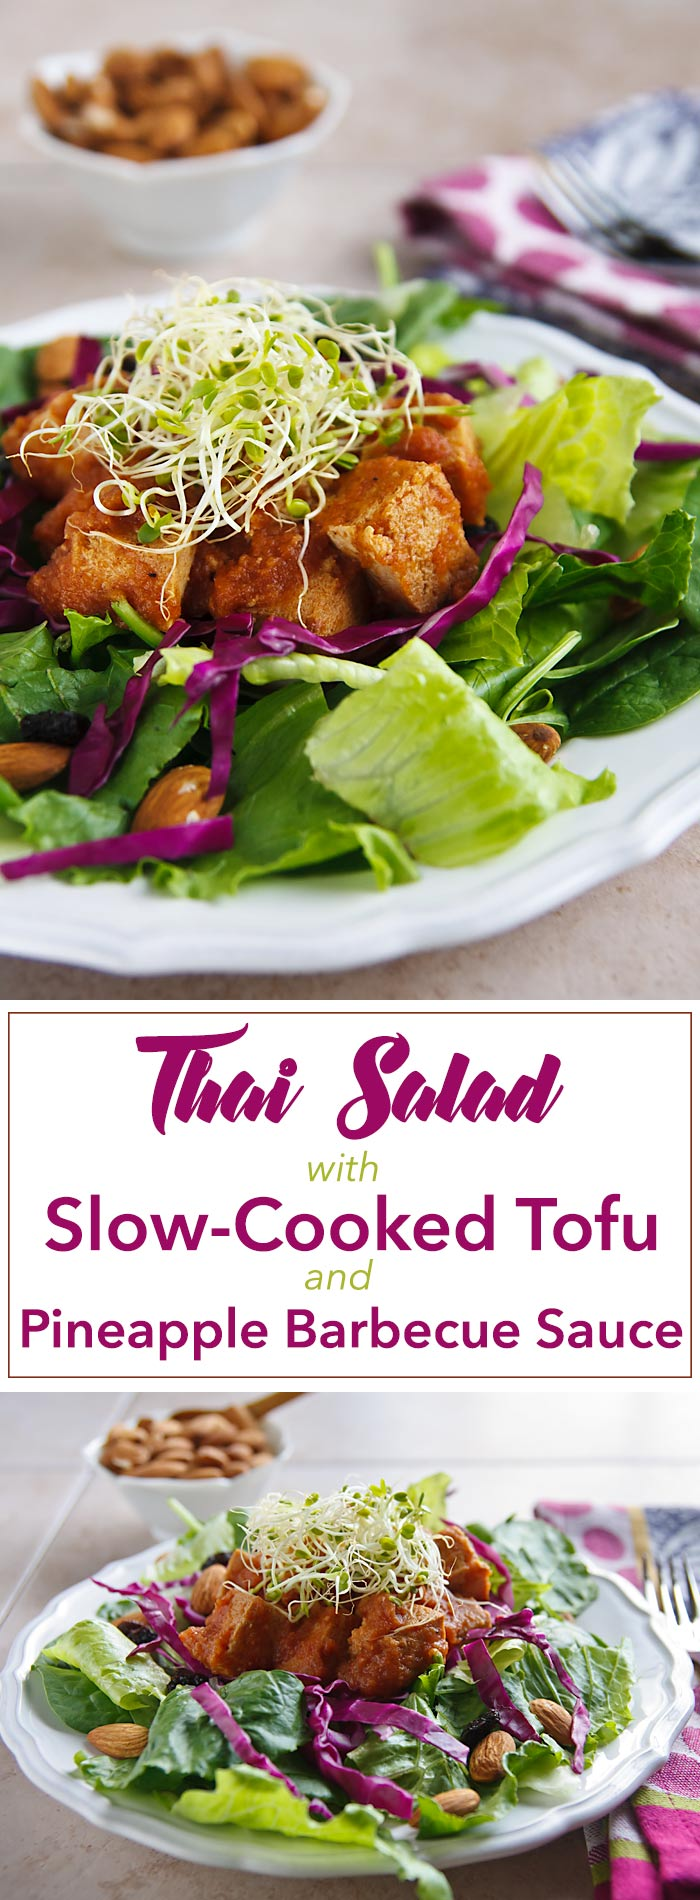 Slow Cooked Tofu In Pineapple Barbecue Sauce